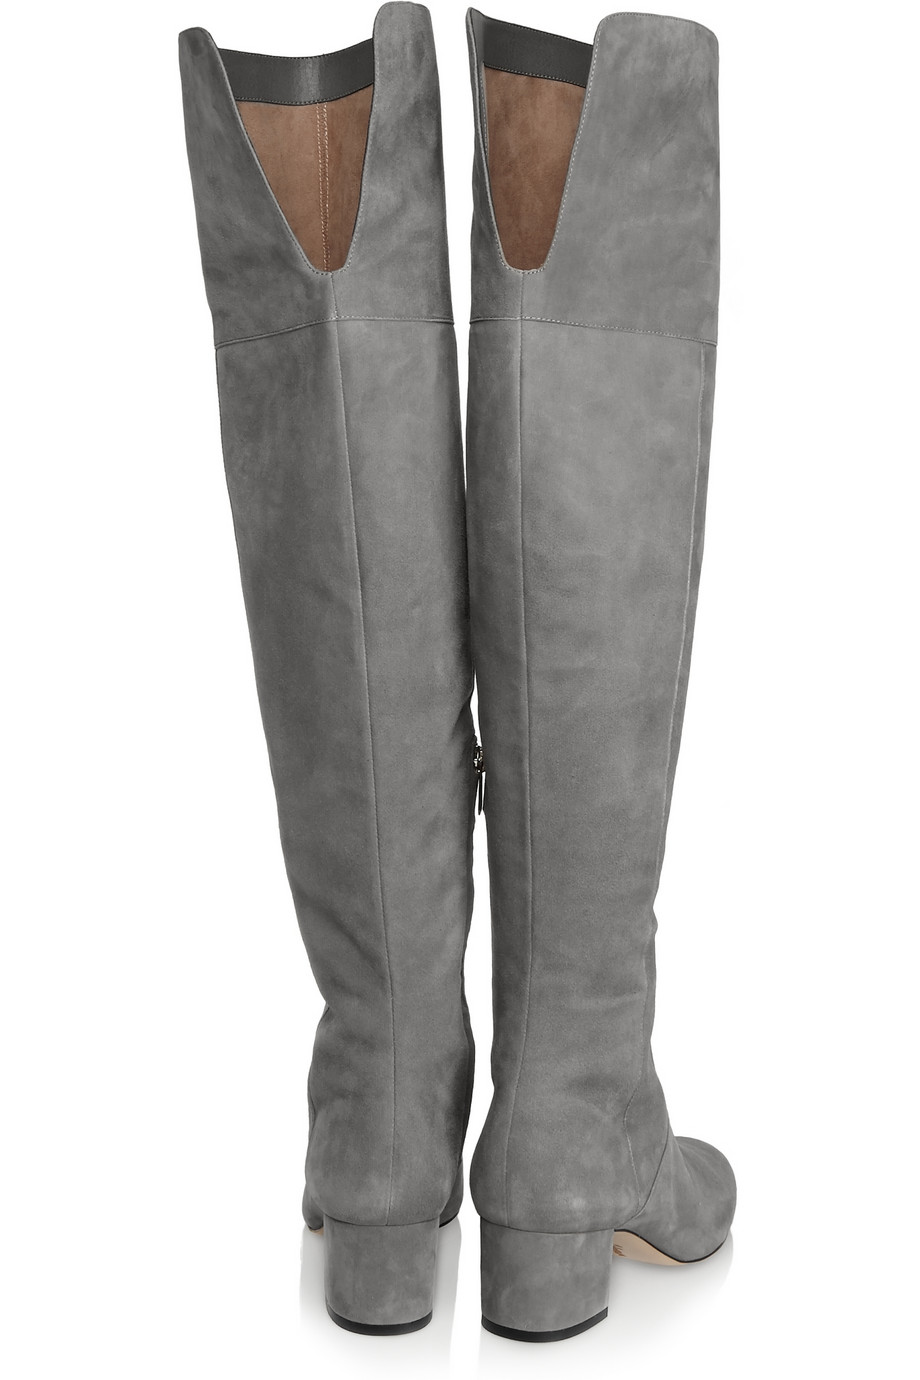 Thigh High Grey Suede Boots feMhZk3Y